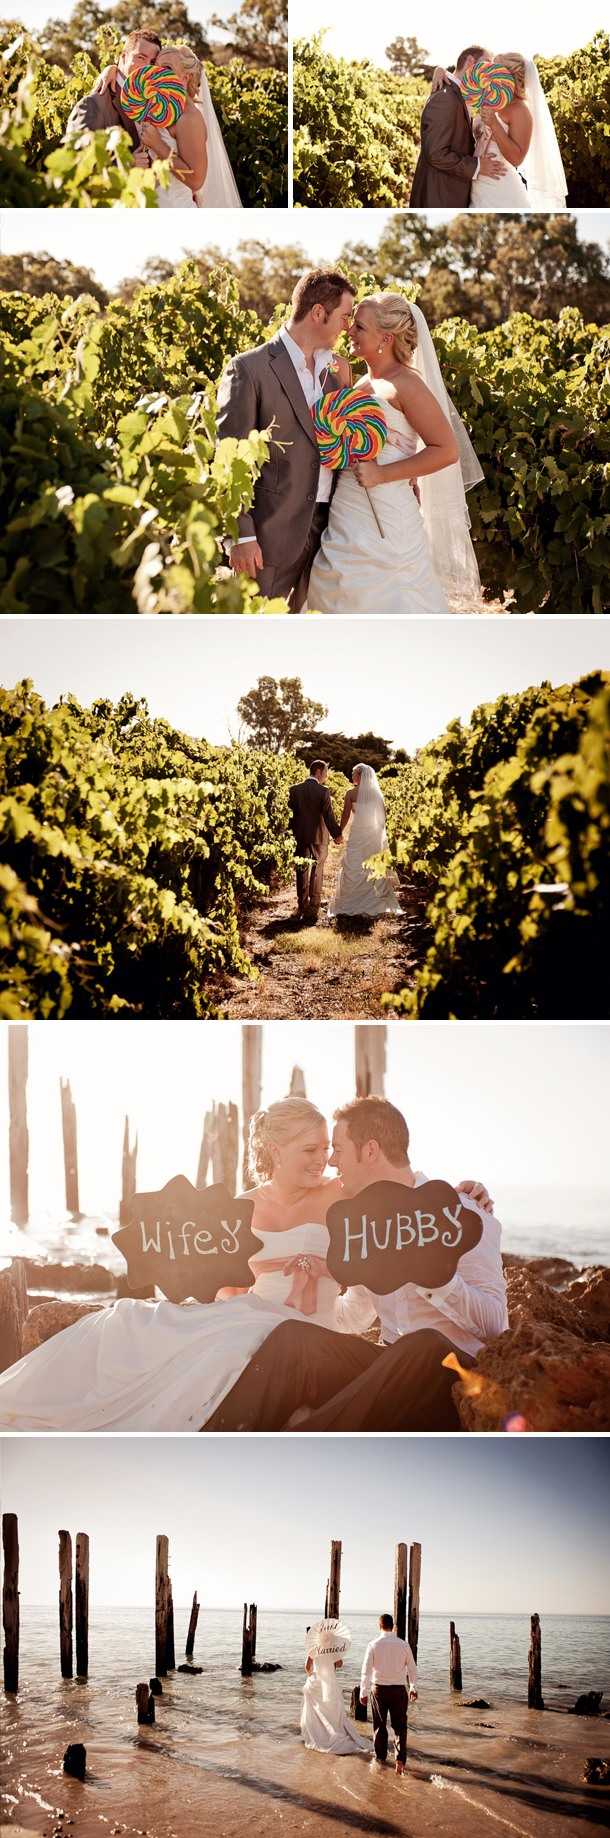 Ashleigh und Ryan - Wundervolles After-Wedding-Shooting von Angelsmith Photography